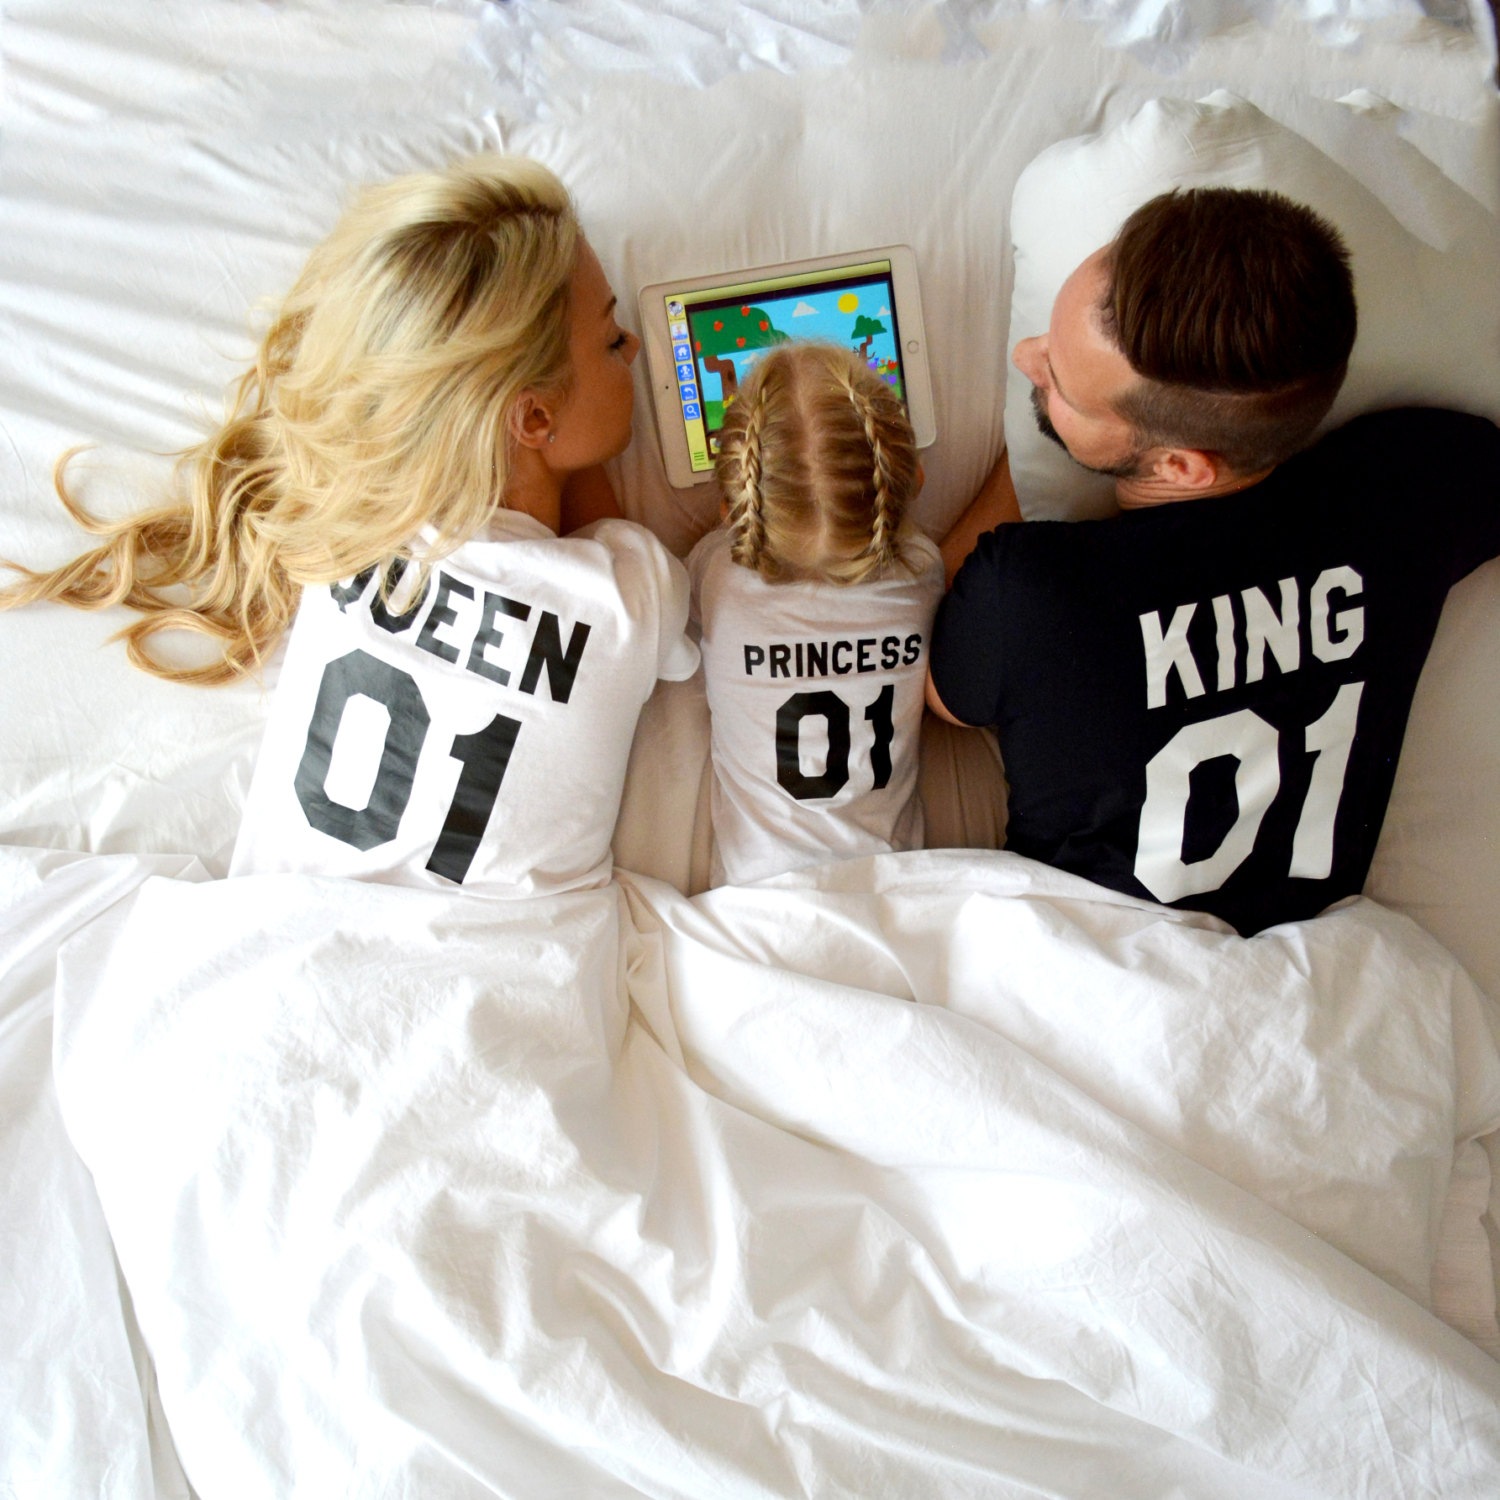 King Queen Prince Matching Family Shirts Unisex